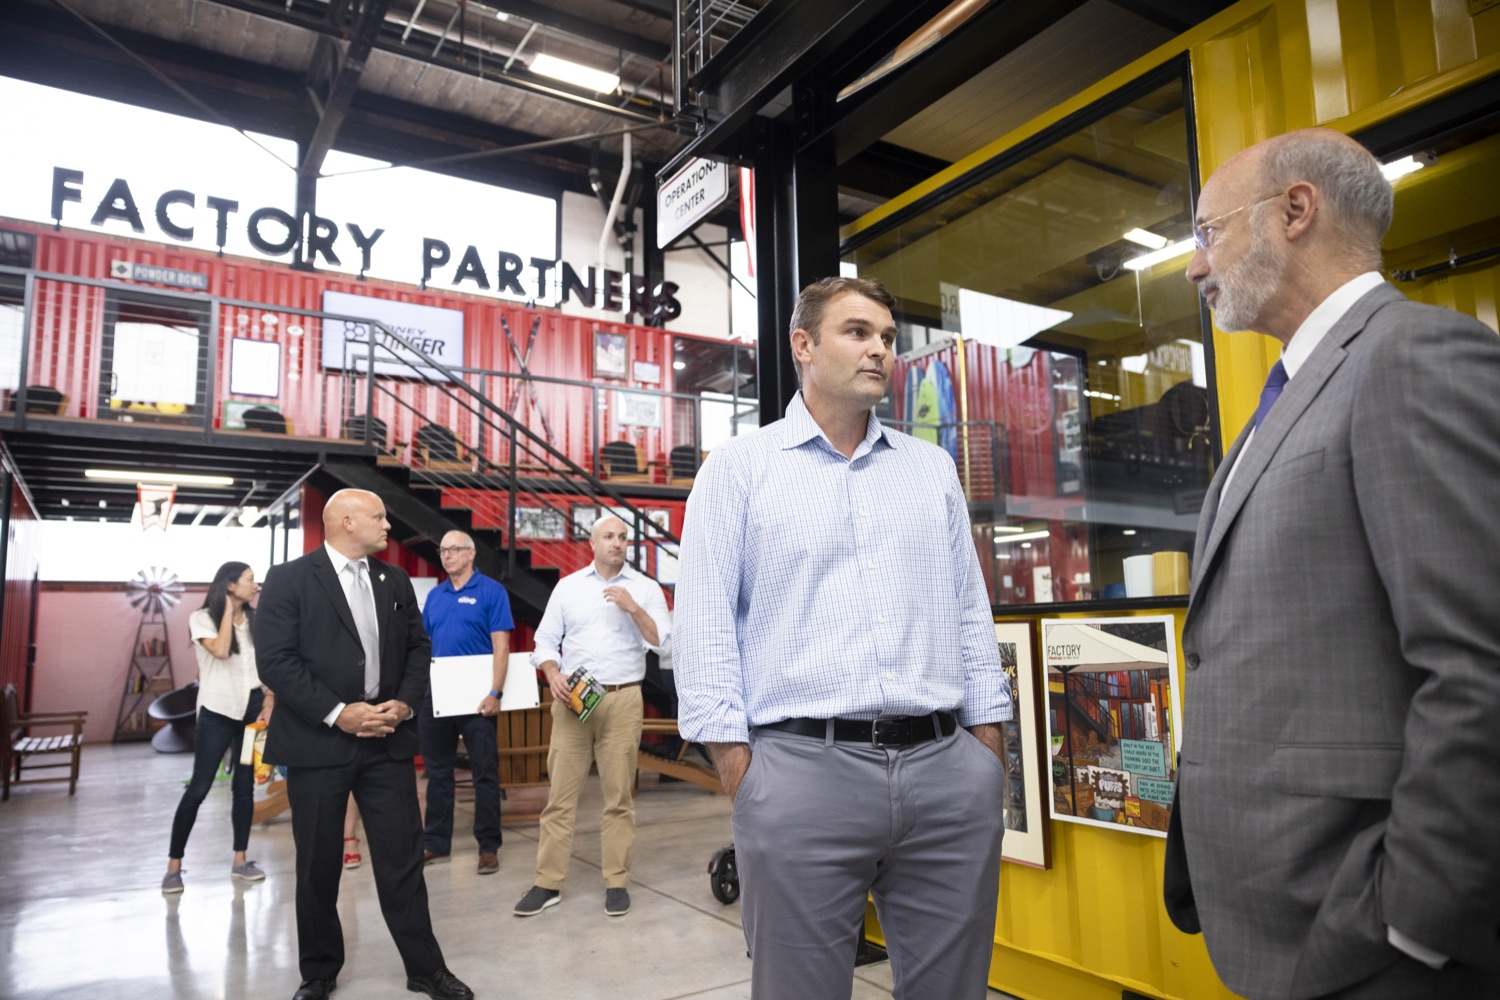 """<a href=""""https://filesource.wostreaming.net/commonwealthofpa/photo/18941_gov_economicDevelopment_dz_004.jpg"""" target=""""_blank"""">⇣Download Photo<br></a>Keith Caldwell, Partner  Factory LLC giving Pennsylvania Governor Tom Wolf a tour of Factory LLC.  Governor Tom Wolf today visited Factory LLC in Bethlehem to tour the facility and highlight the importance of investing in Pennsylvanias start-up companies. During the visit, he met with companies affiliated with Factory, including Stuffed Puffs®, which received a $1 million funding proposal from the commonwealth in 2019 to expand its manufacturing operations and create jobs, Mikeys®, Pipcorn®, Honey Stinger®, and ROAR® Organic. Bethlehem, PA  July 19, 2021"""